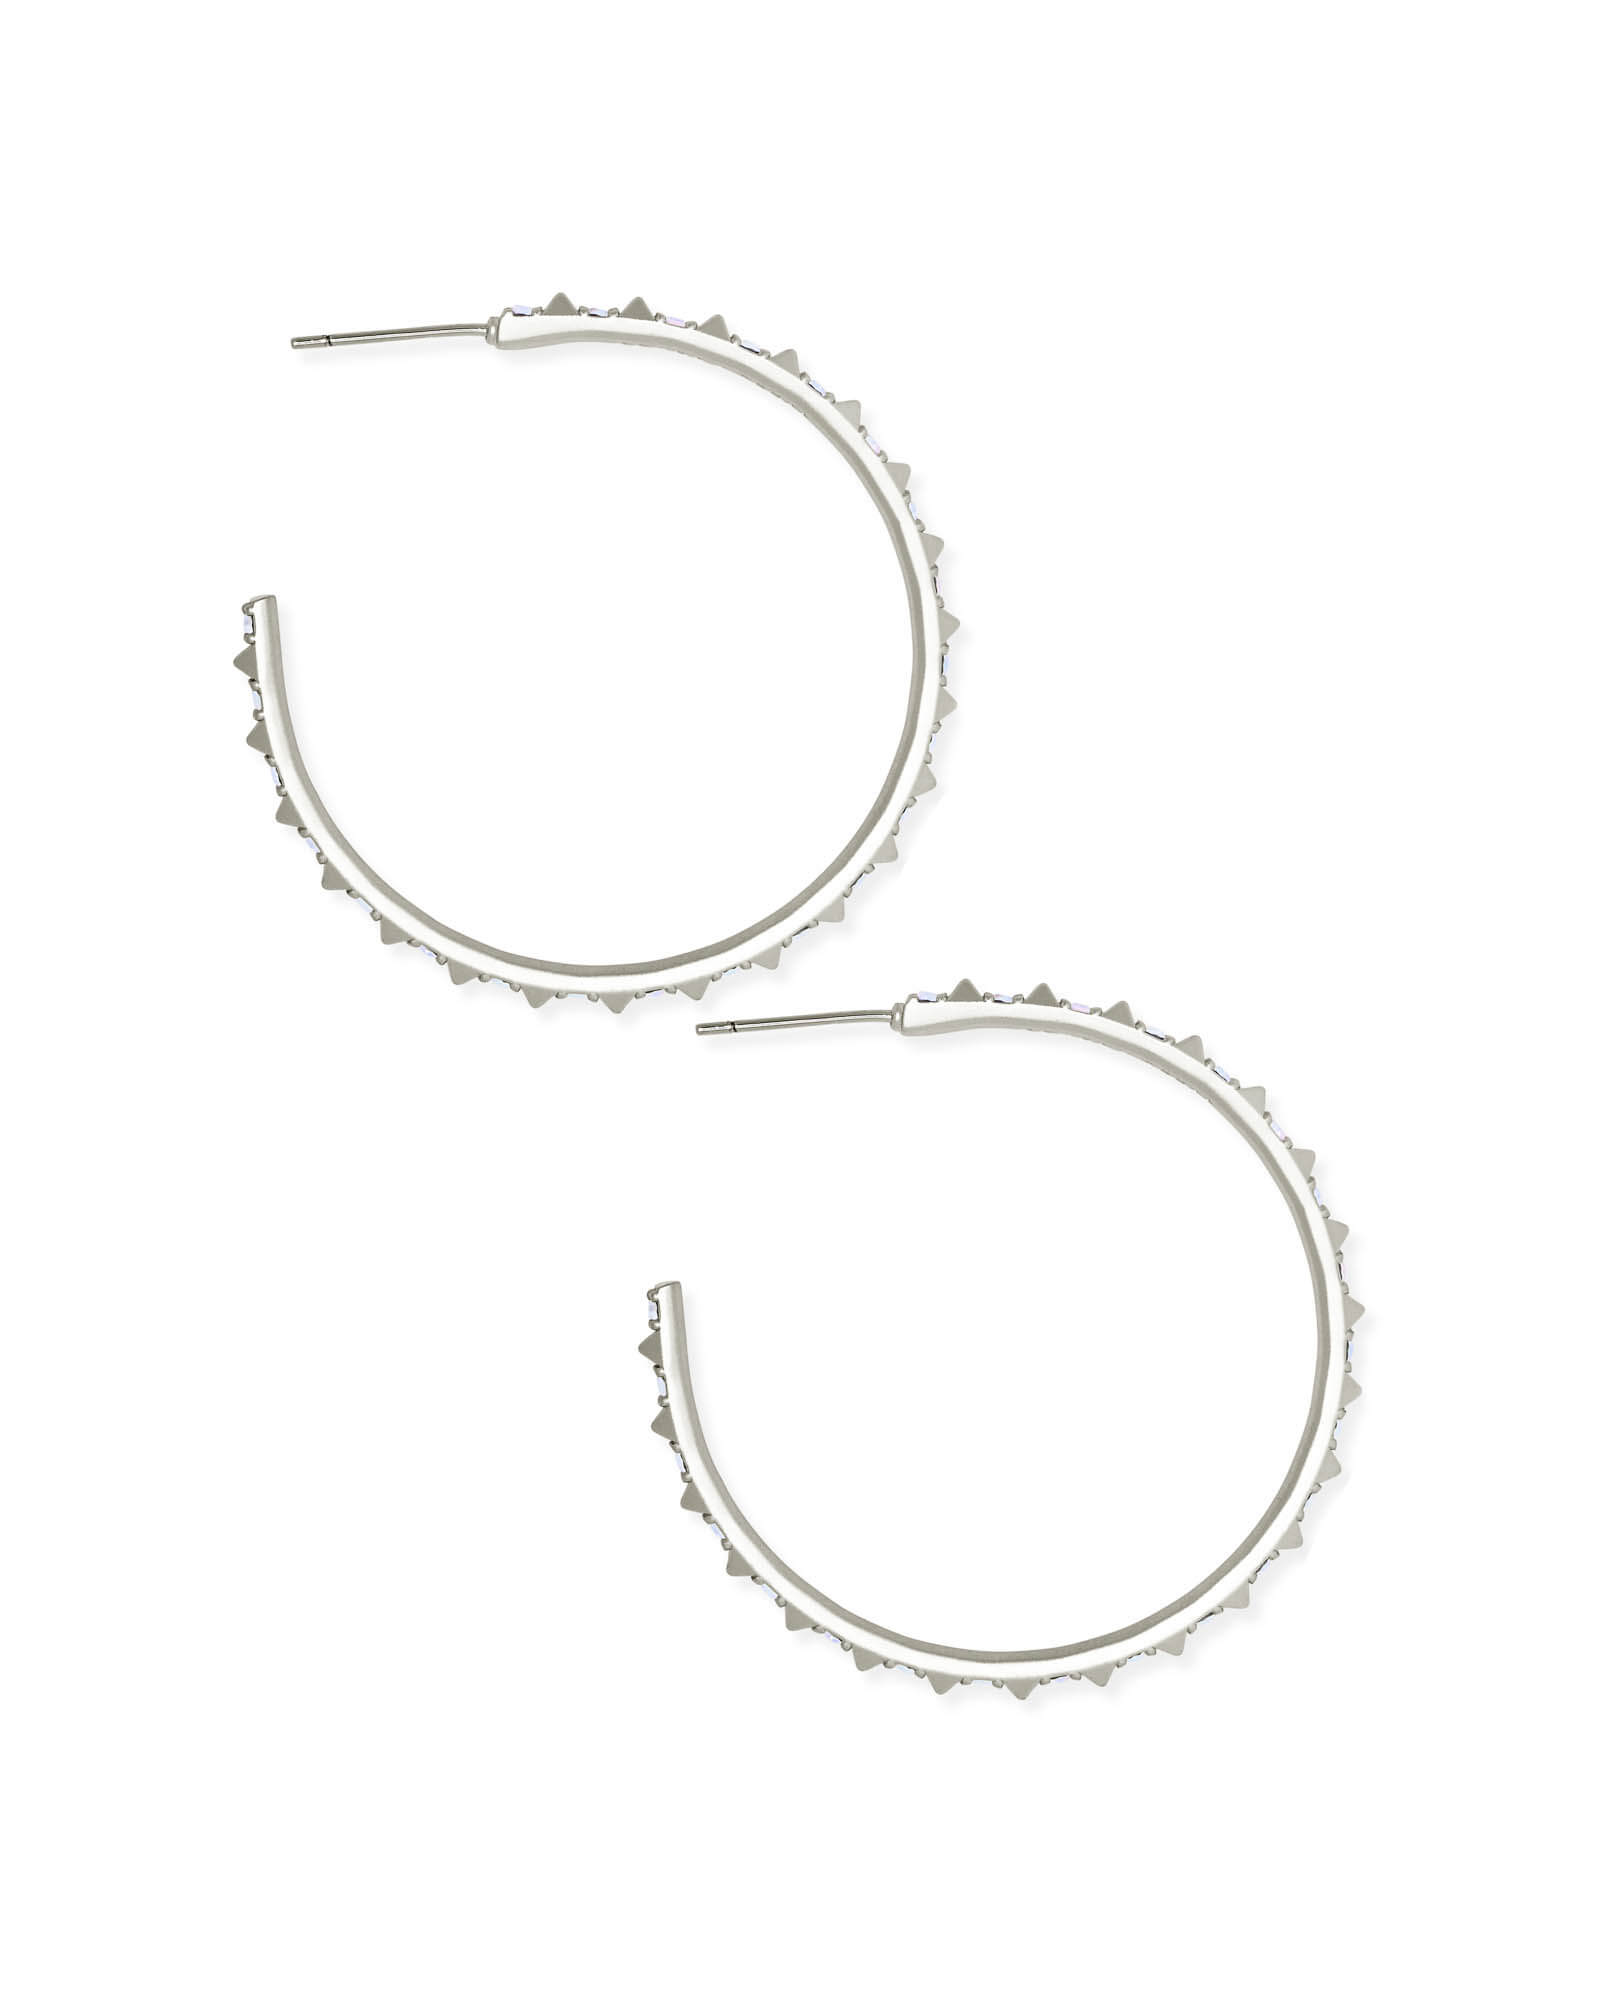 Veronica Hoop Earrings in Silver